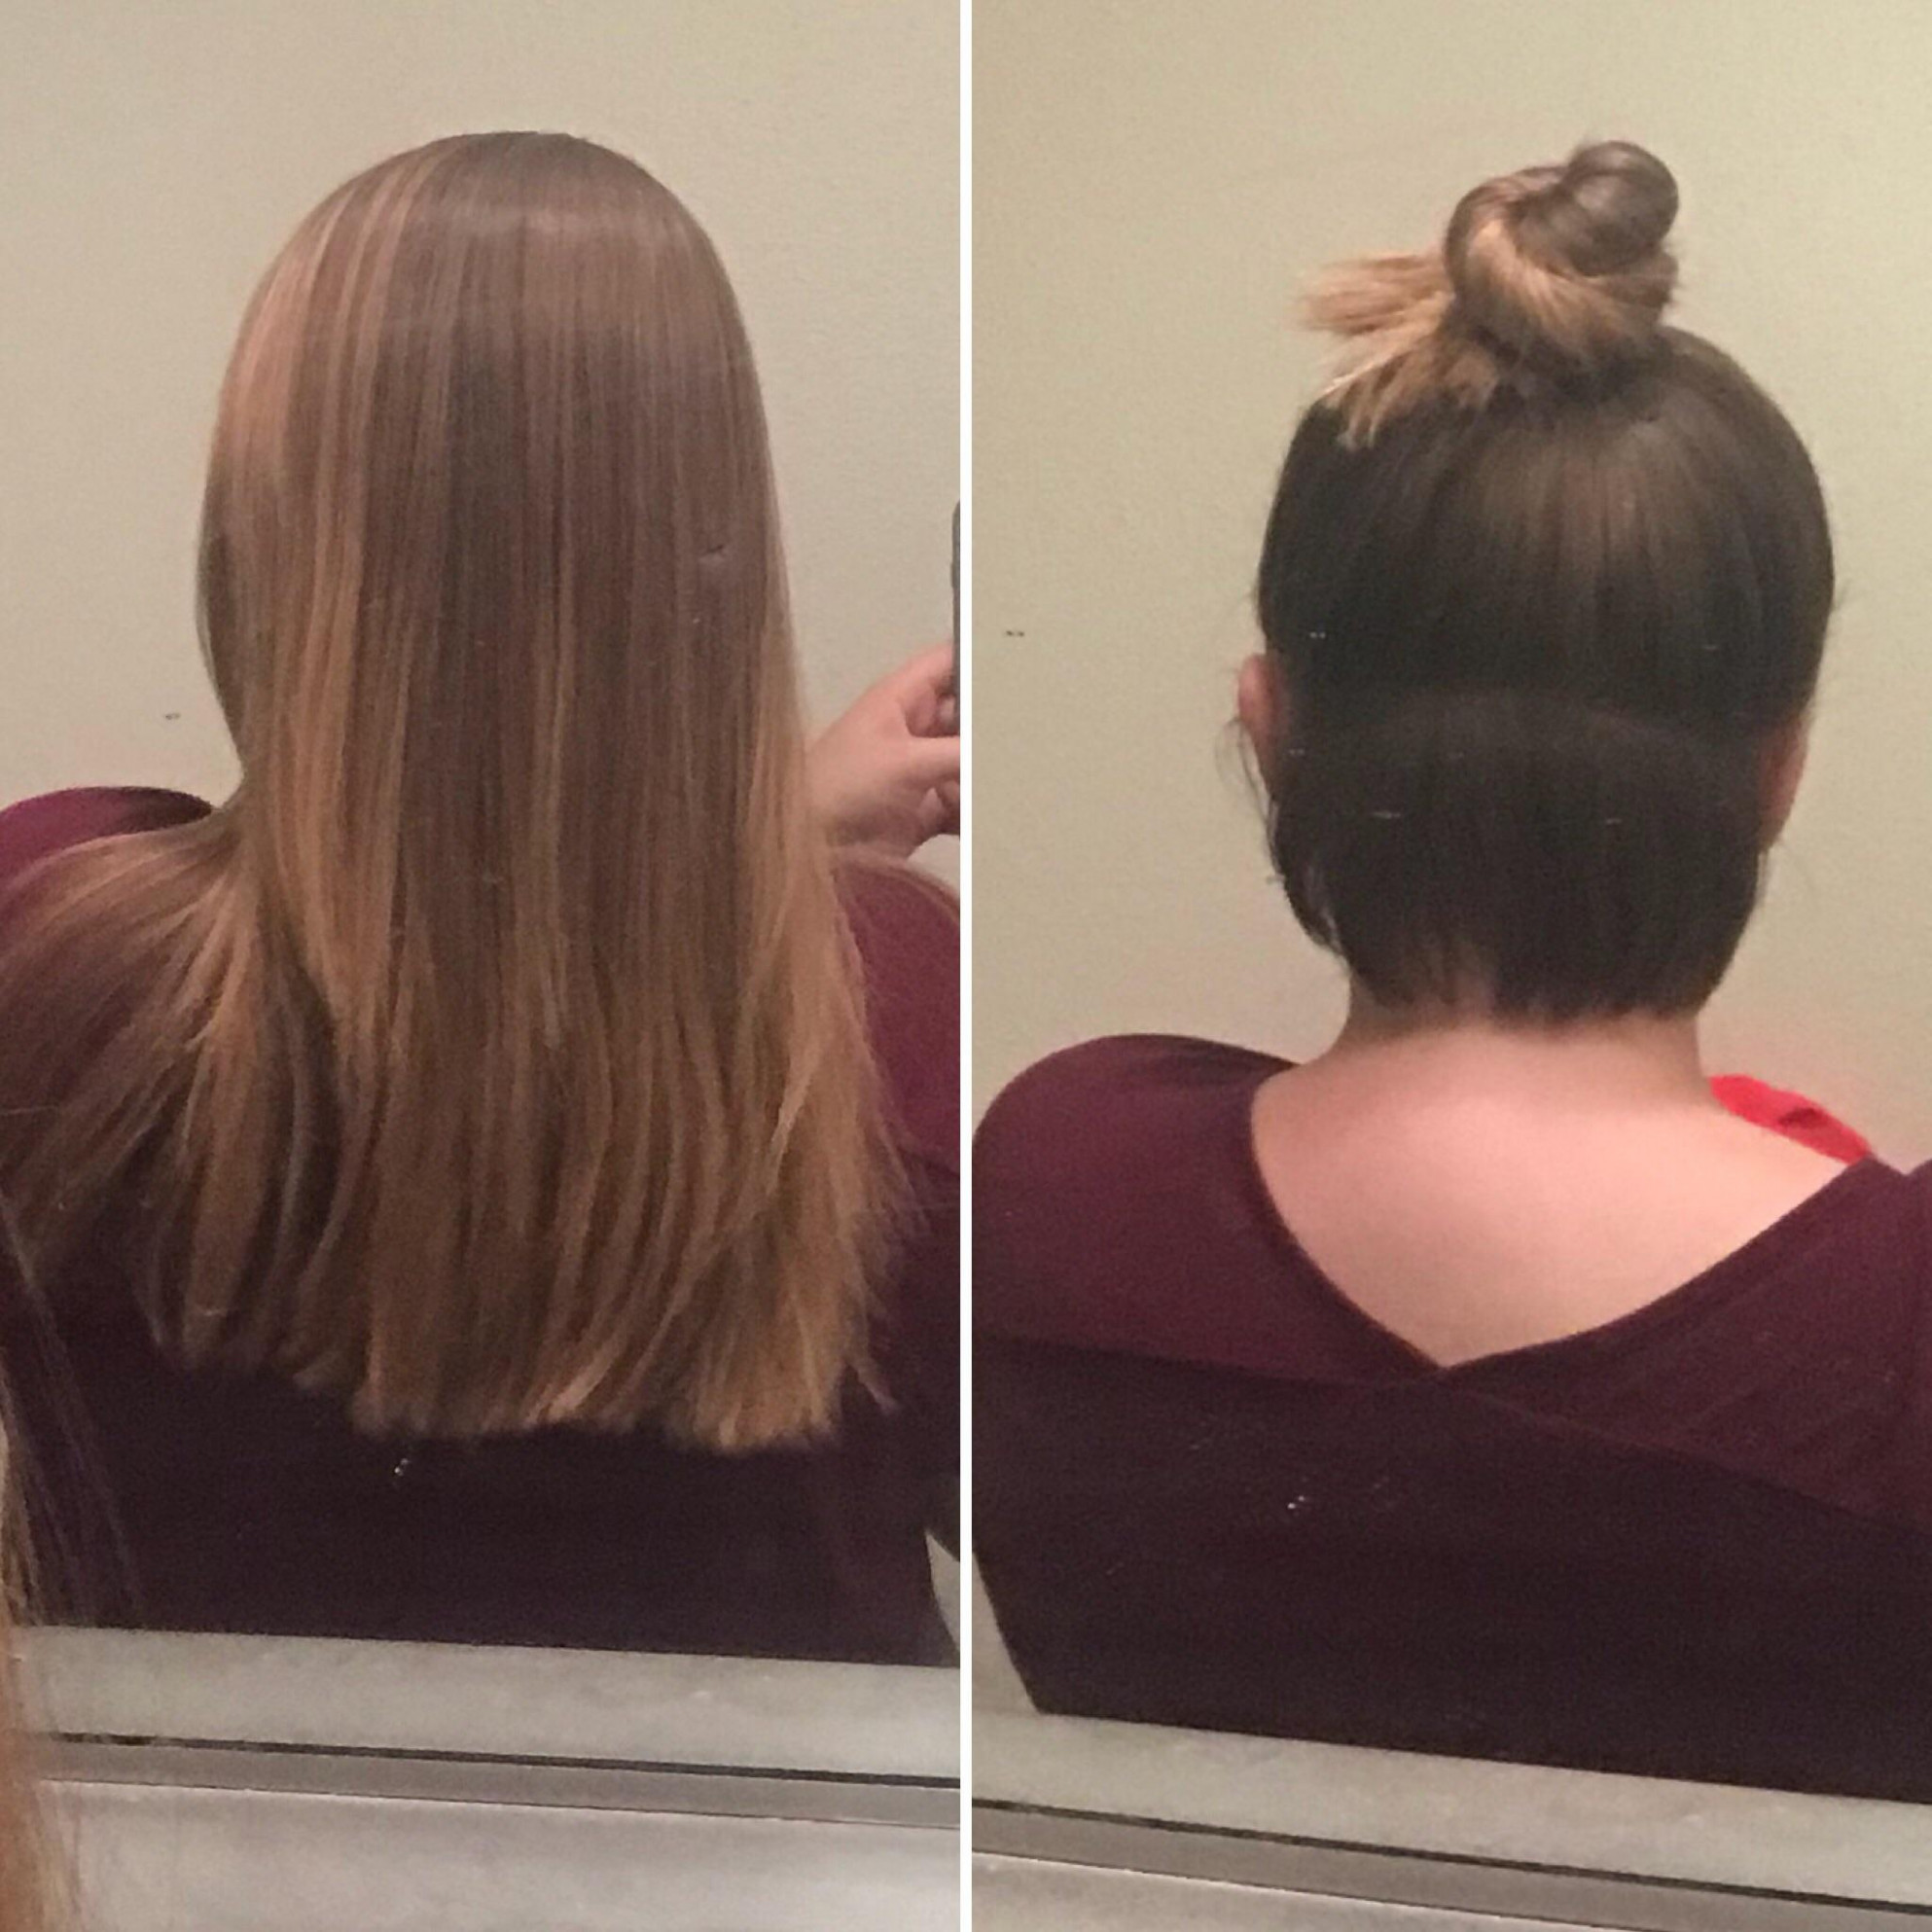 Anybody have any advice for styles while growing out a nape